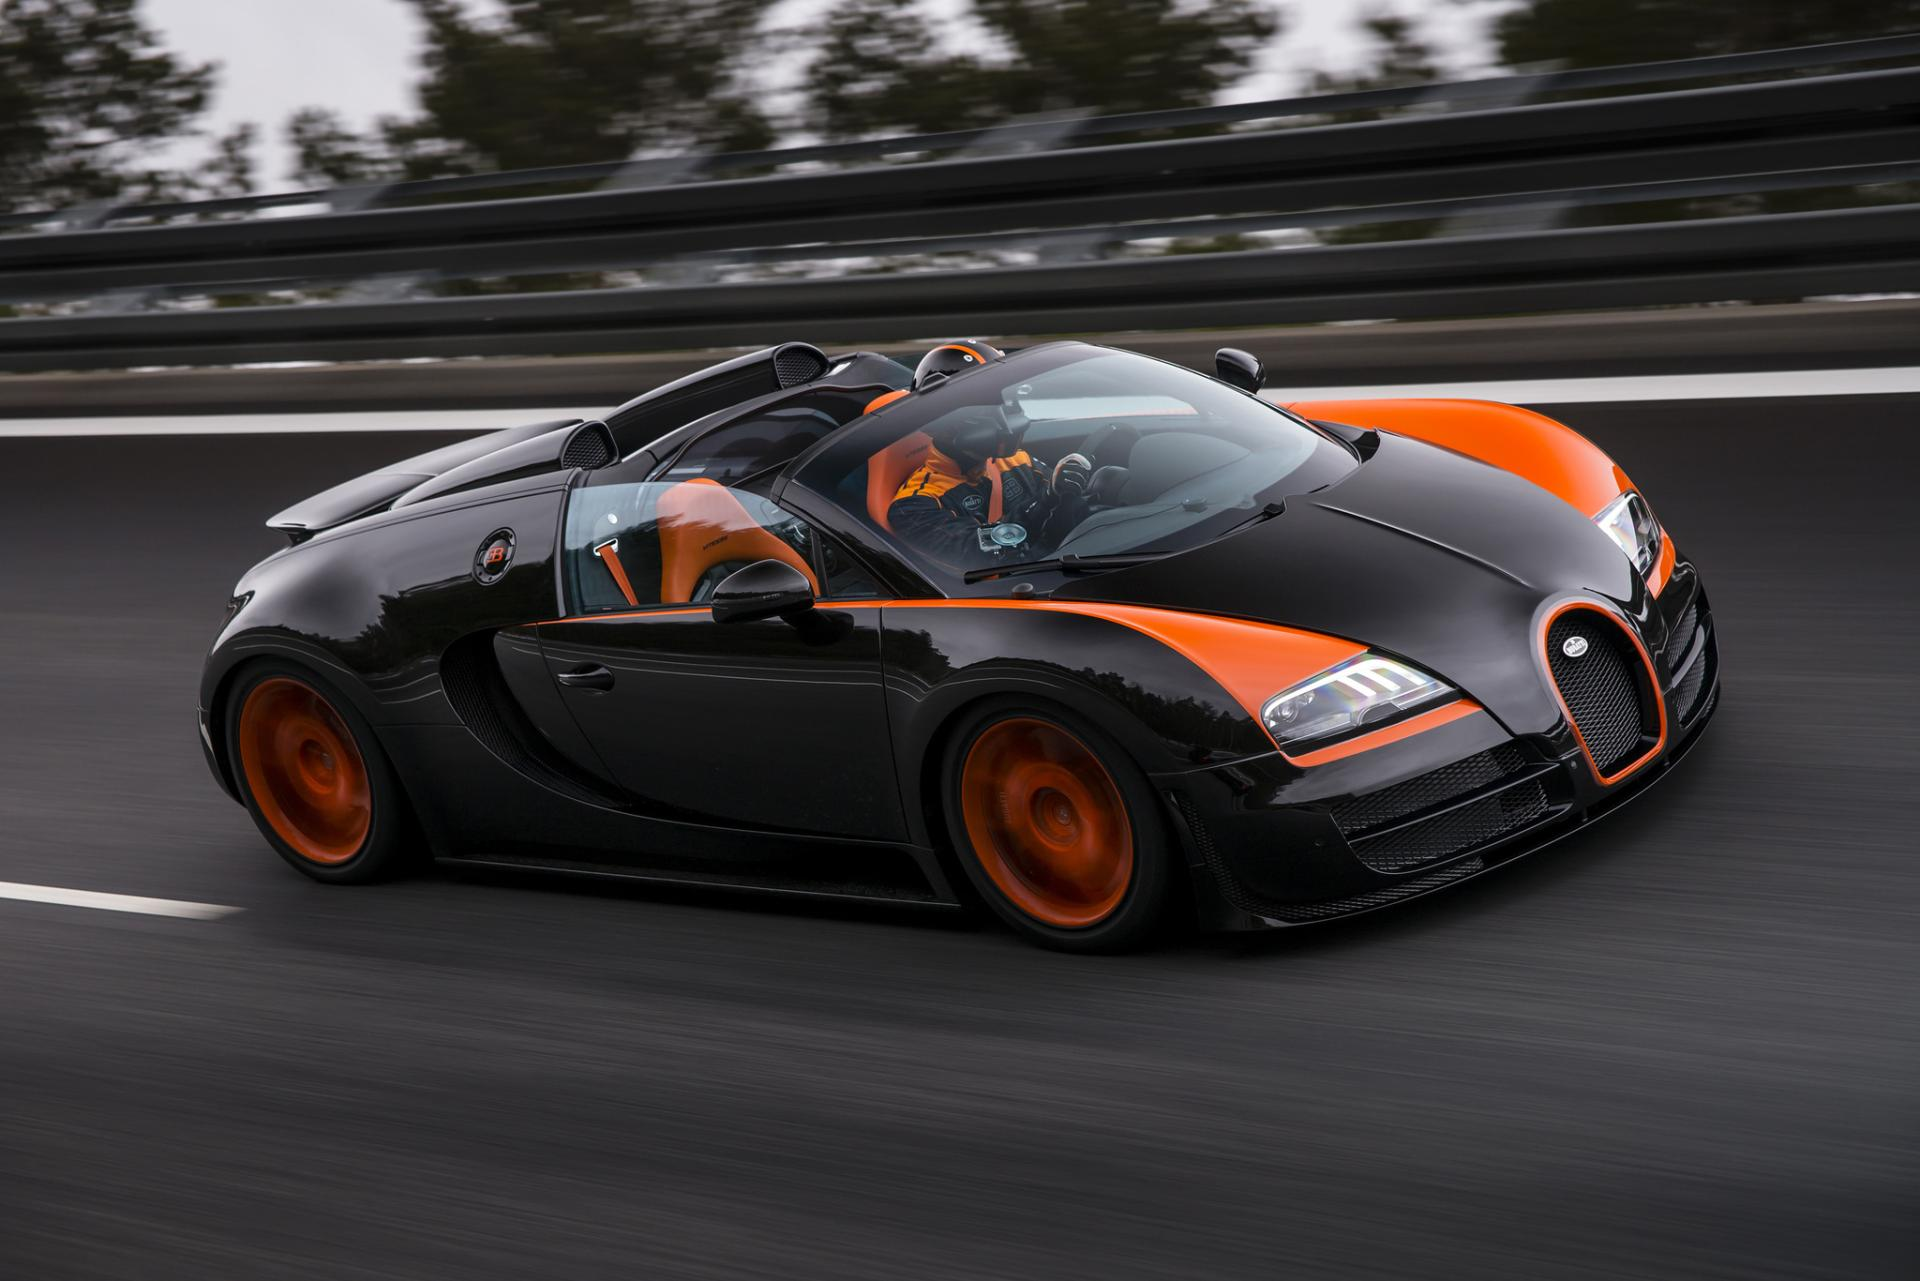 2013 bugatti veyron grand sport vitesse wrc. Black Bedroom Furniture Sets. Home Design Ideas